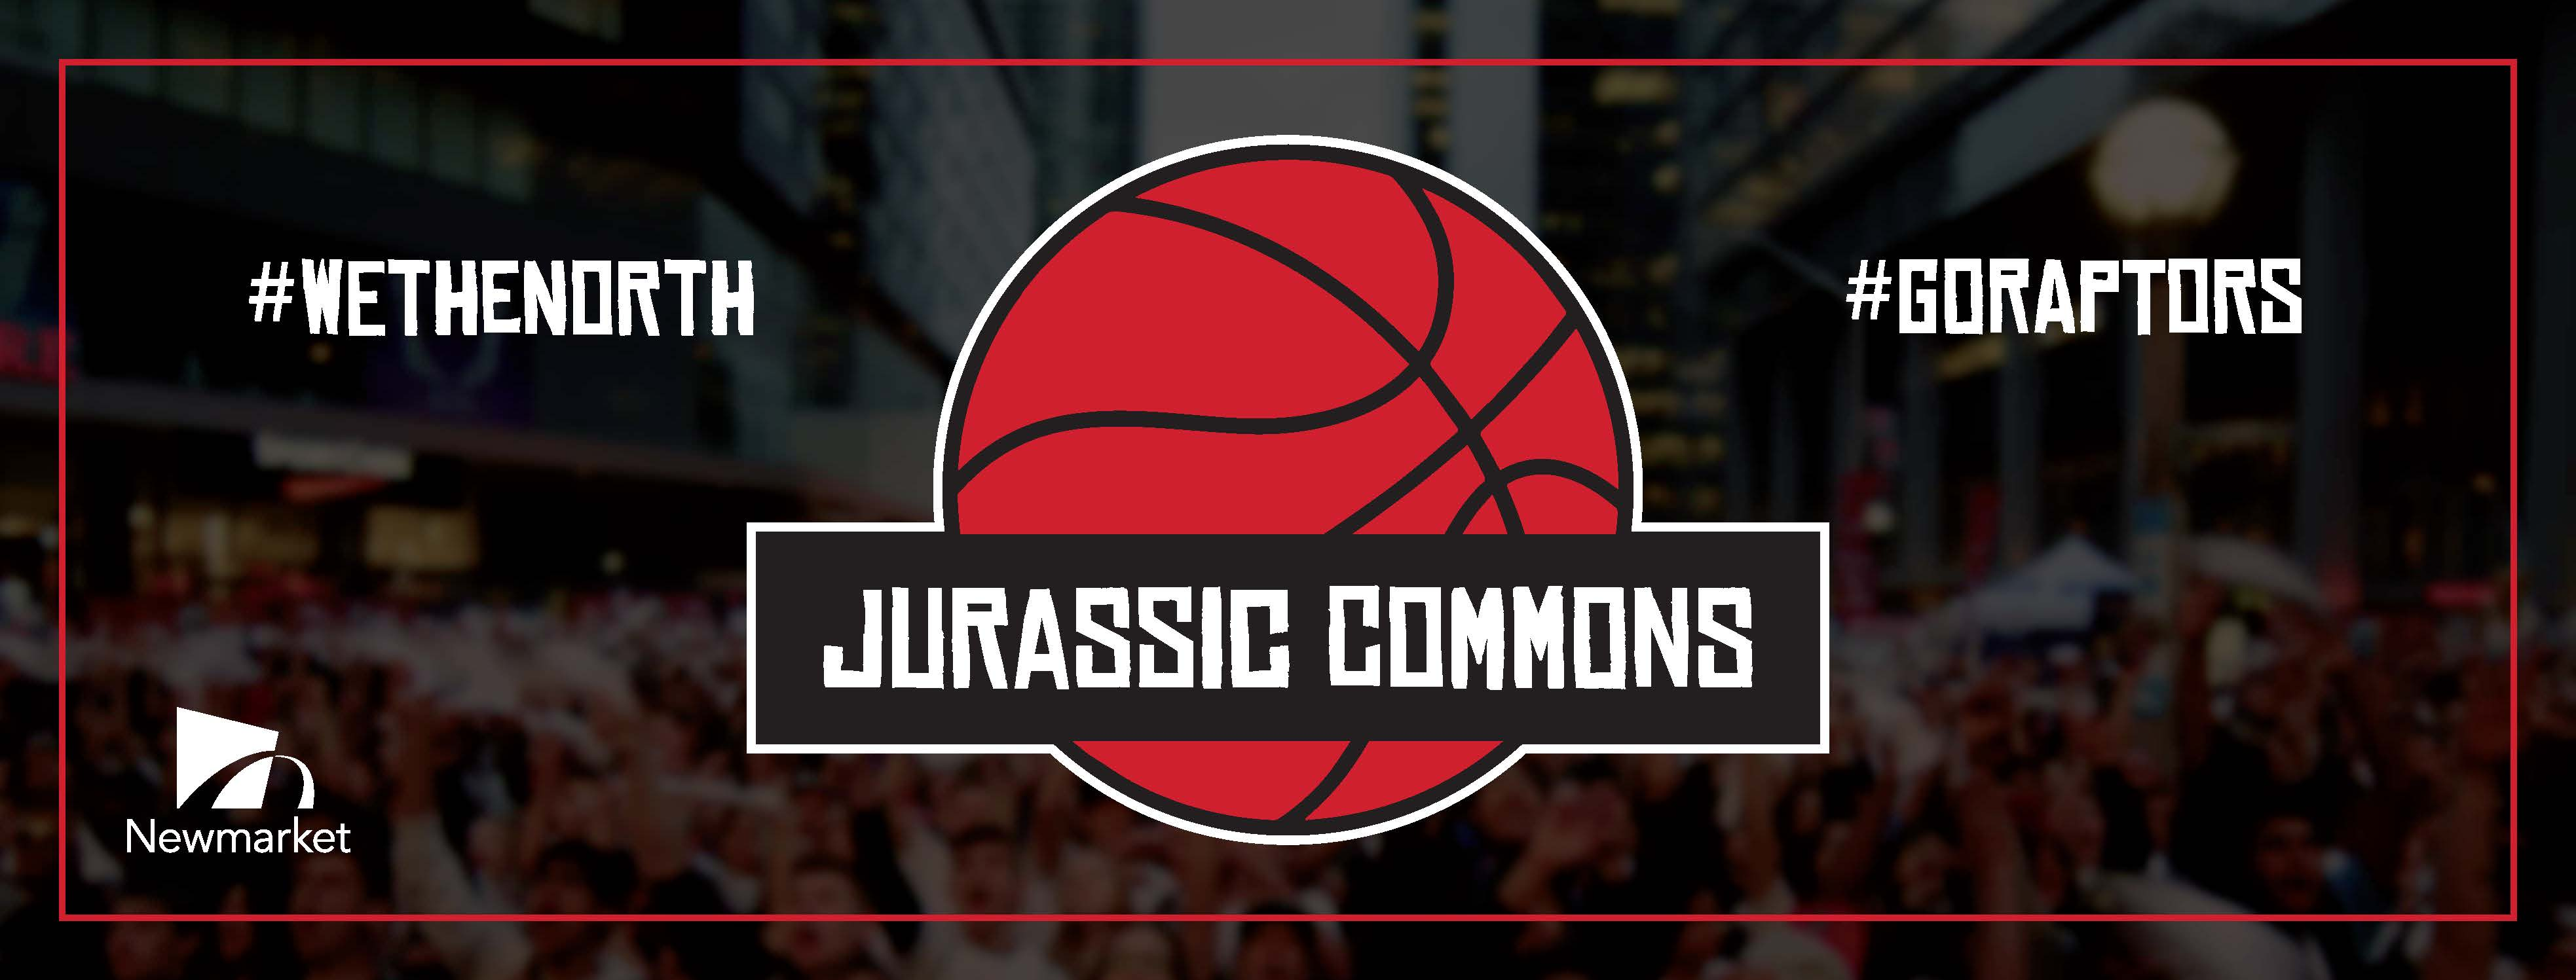 Jurassic Commons Button